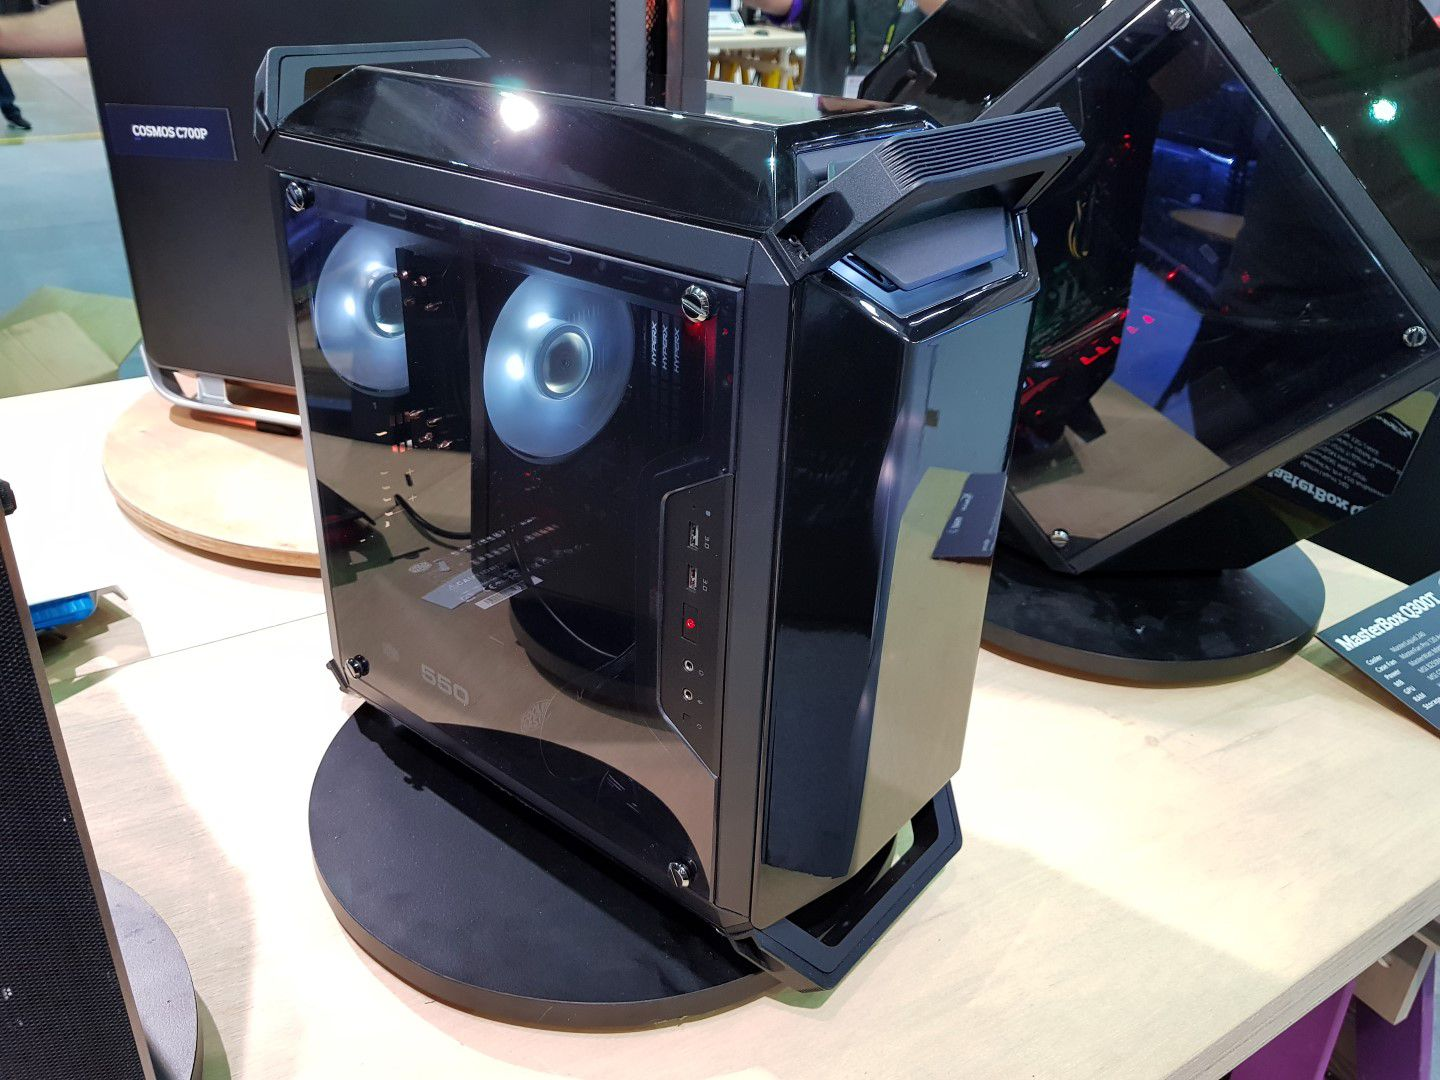 Cooler Master Brings Legends to Life at COMPUTEX 2017 41